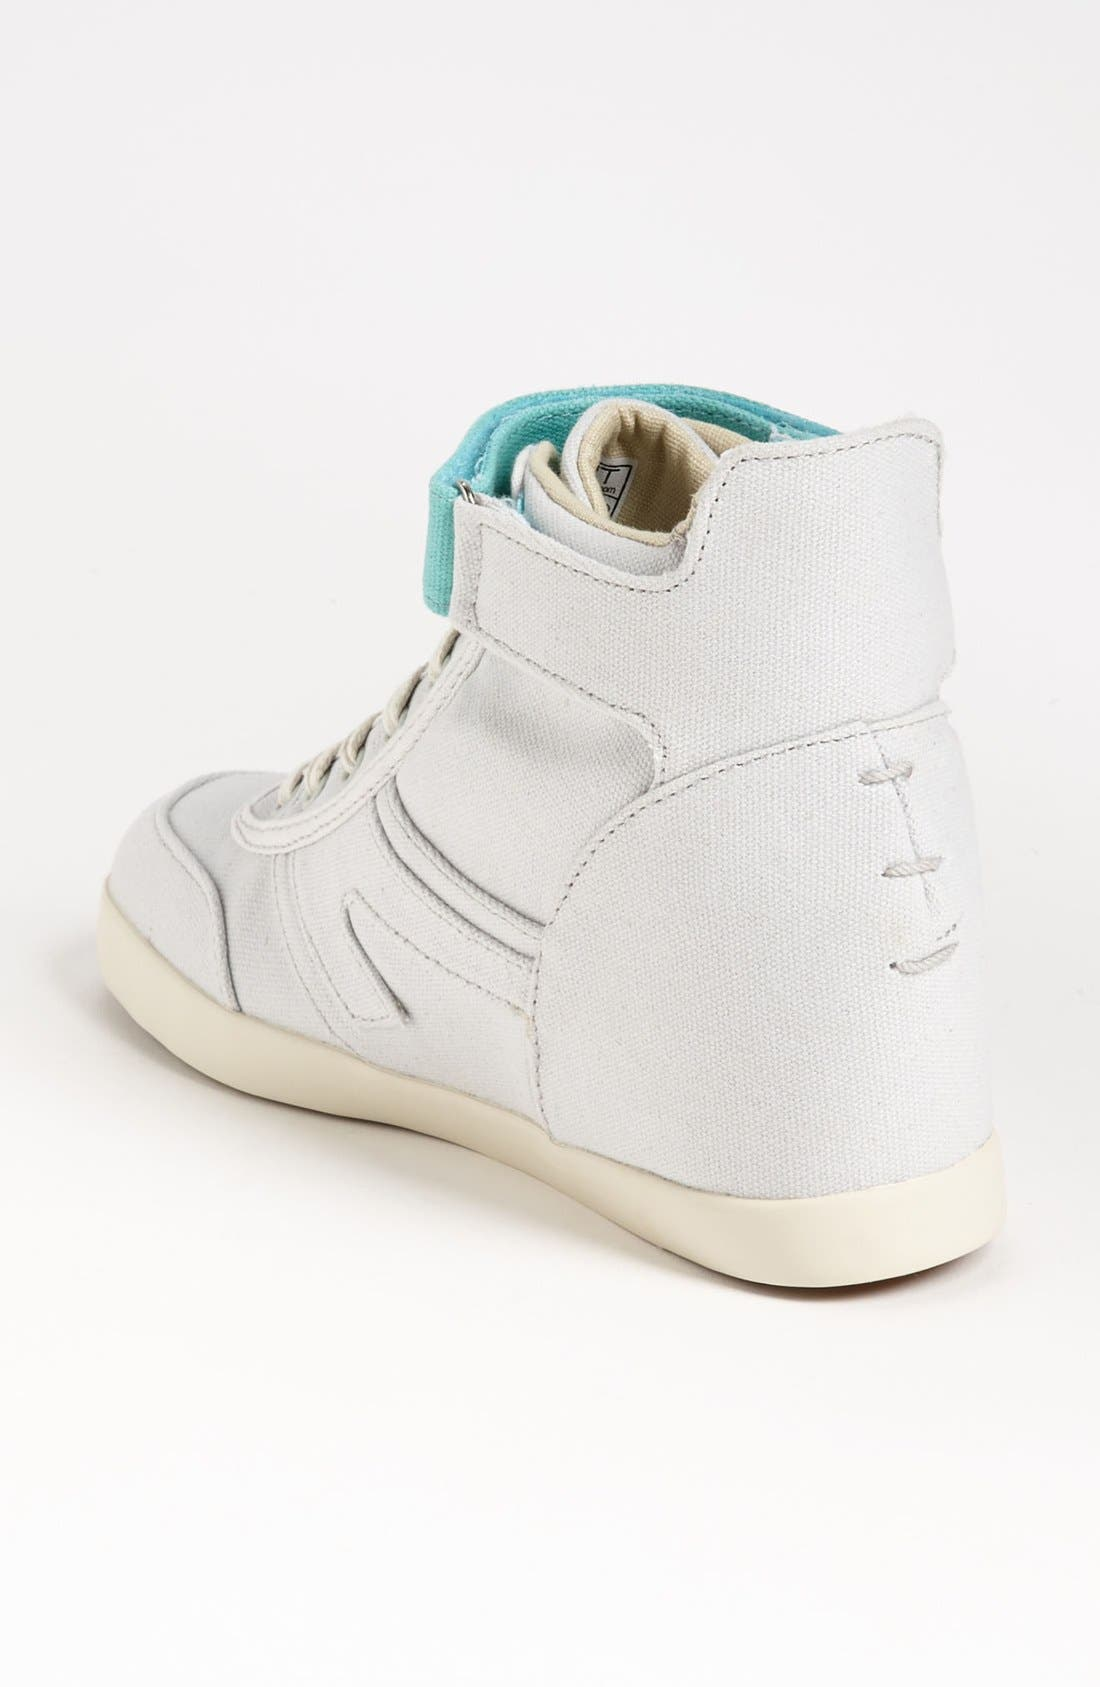 Alternate Image 2  - The People's Movement 'Jade' Wedge Sneaker